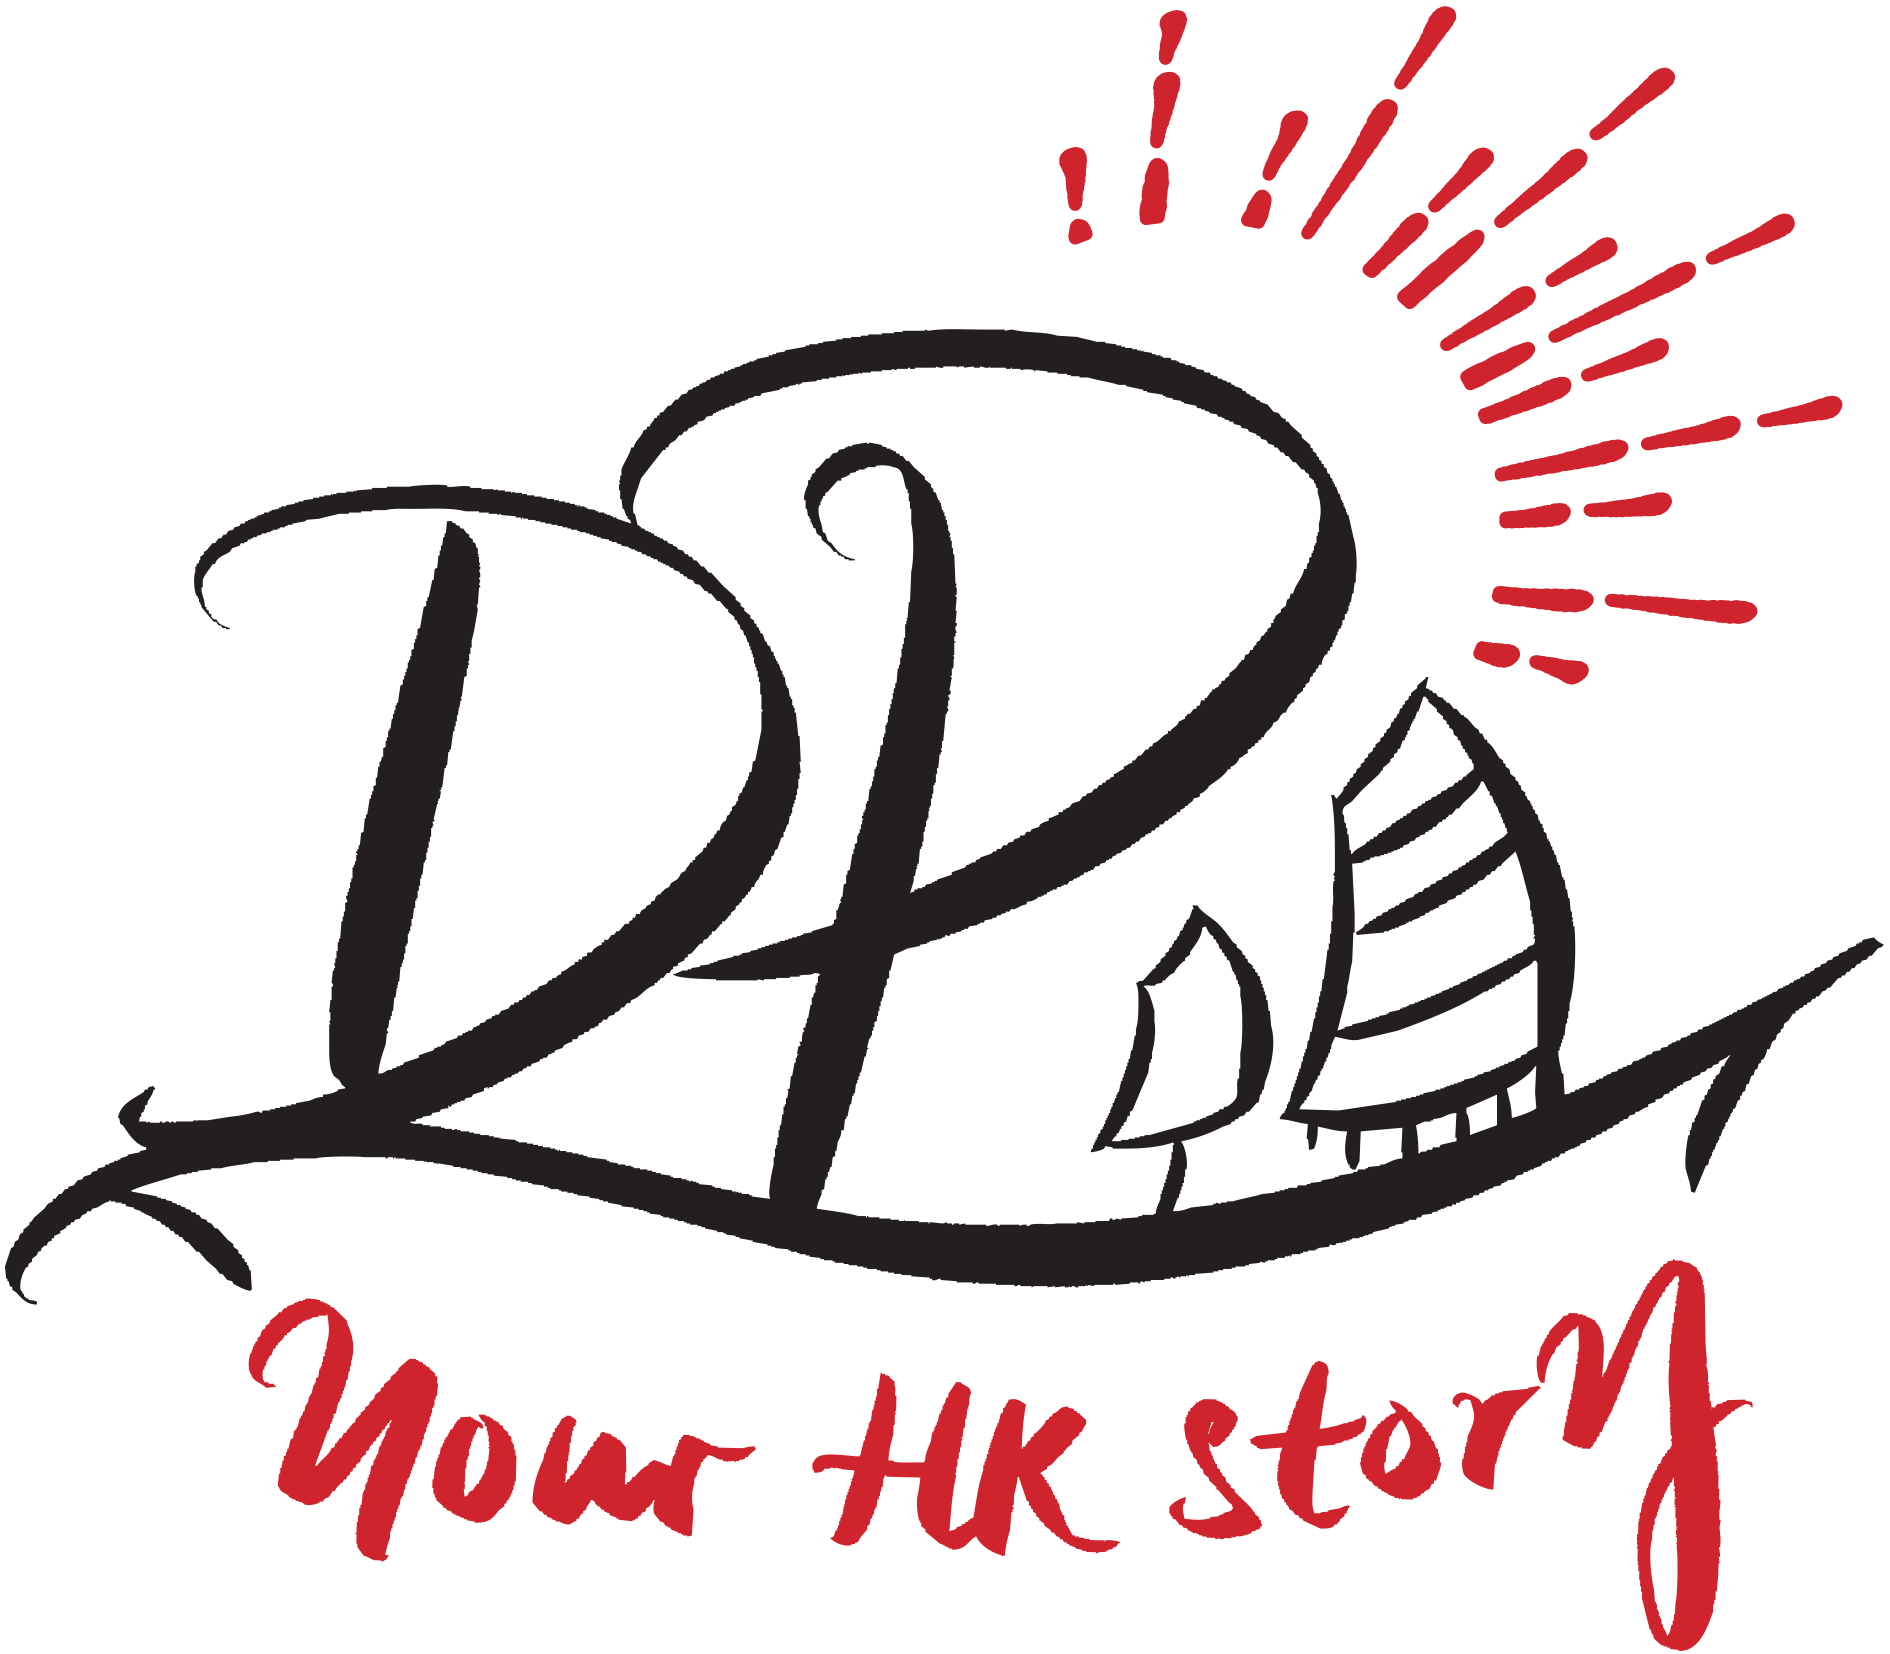 Dreams, Passion & Your Hong Kong Story